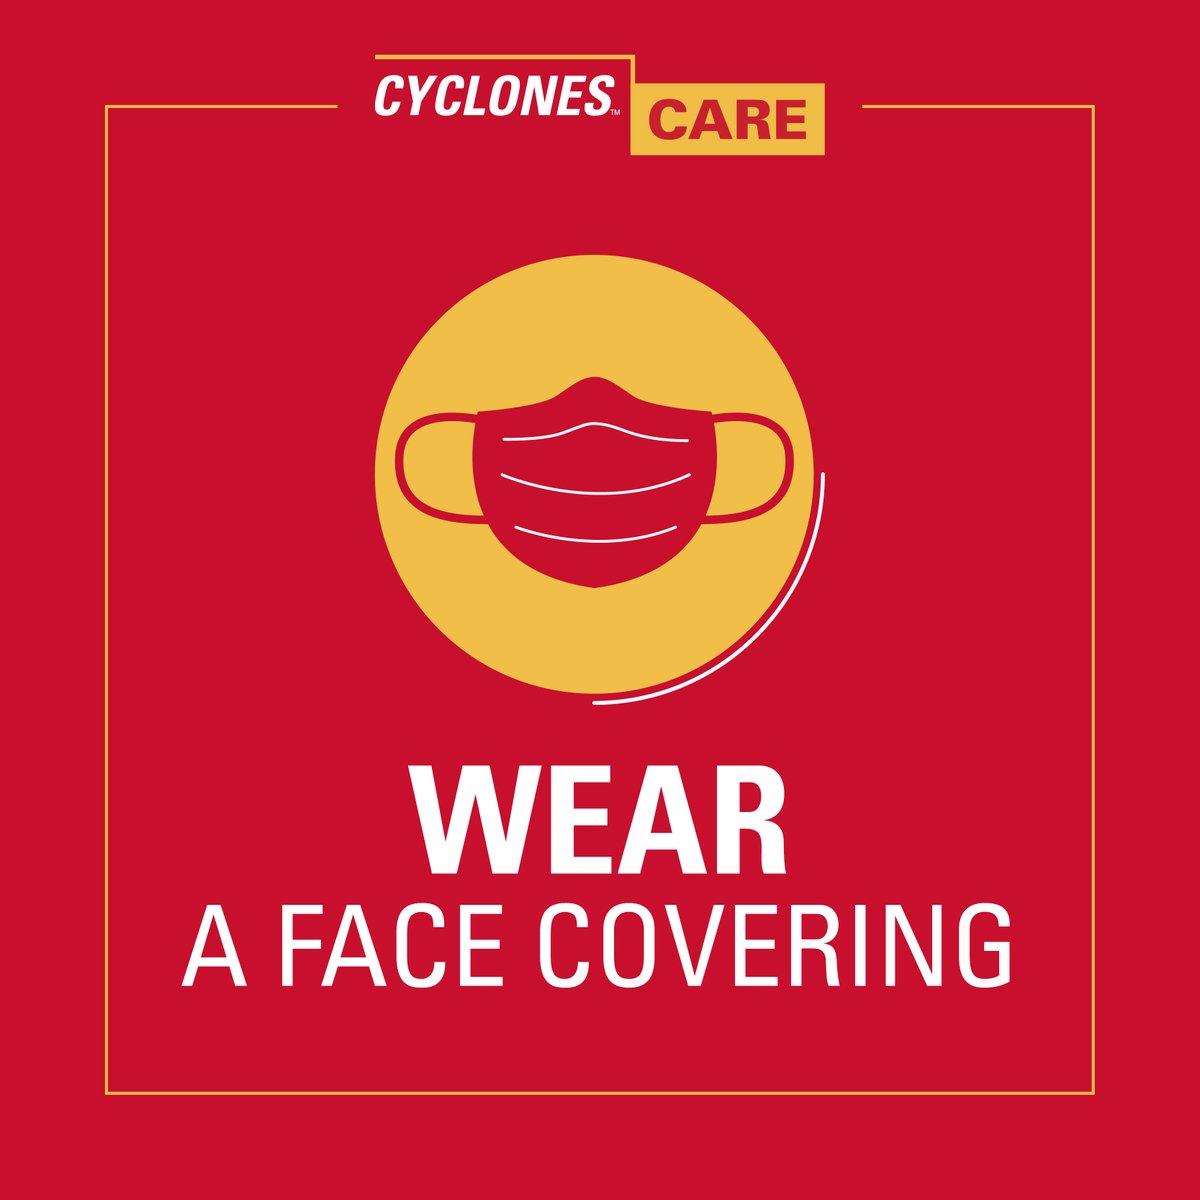 Four simple, healthy behaviors to bring with you to campus.  #FaceCovering #Distance #WashHands #StayHome  Face Covering Policy:  https://bit.ly/3ihWtKa pic.twitter.com/xDHFRTE1SJ